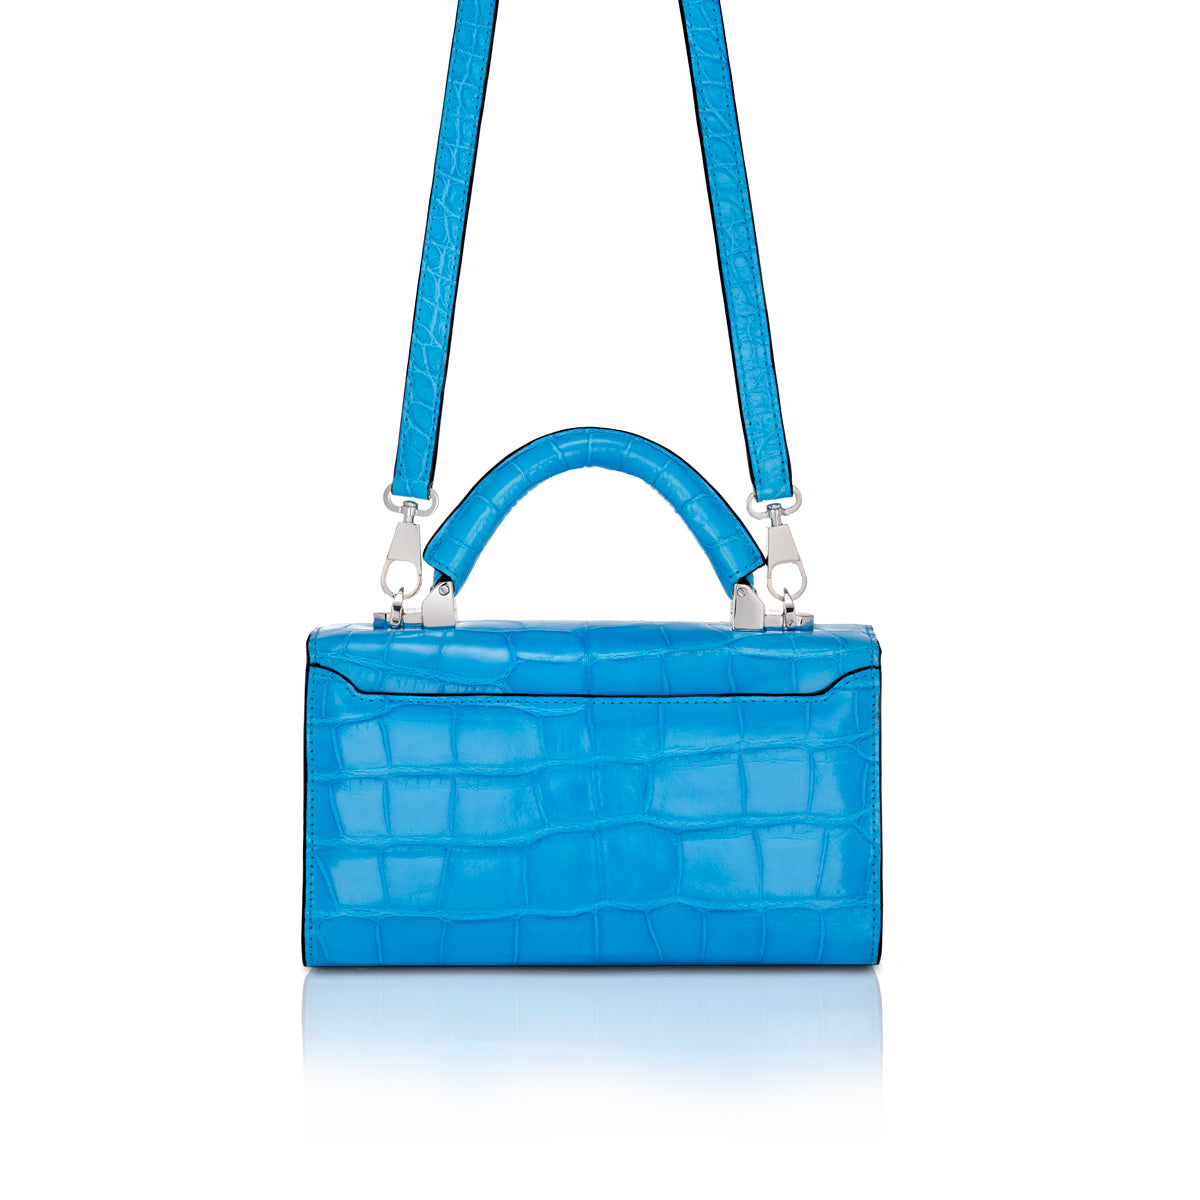 Top Handle 2.0 Mini - Electric Blue Alligator